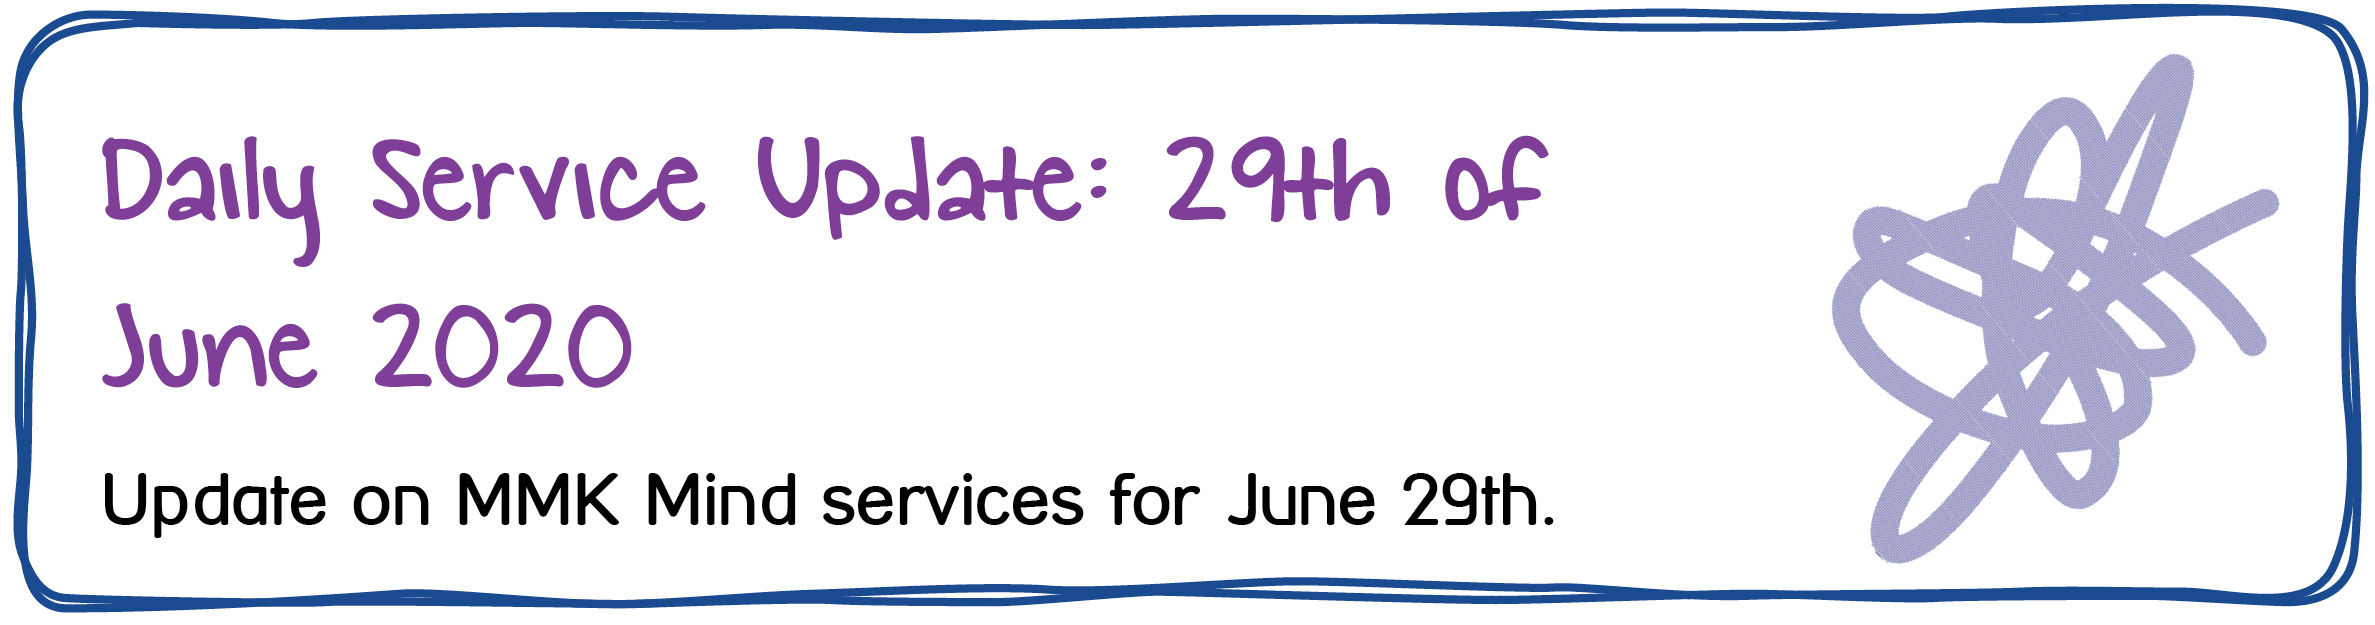 Daily Service Update: 29th of June 2020. Update on MMK Mind services for June 29th.